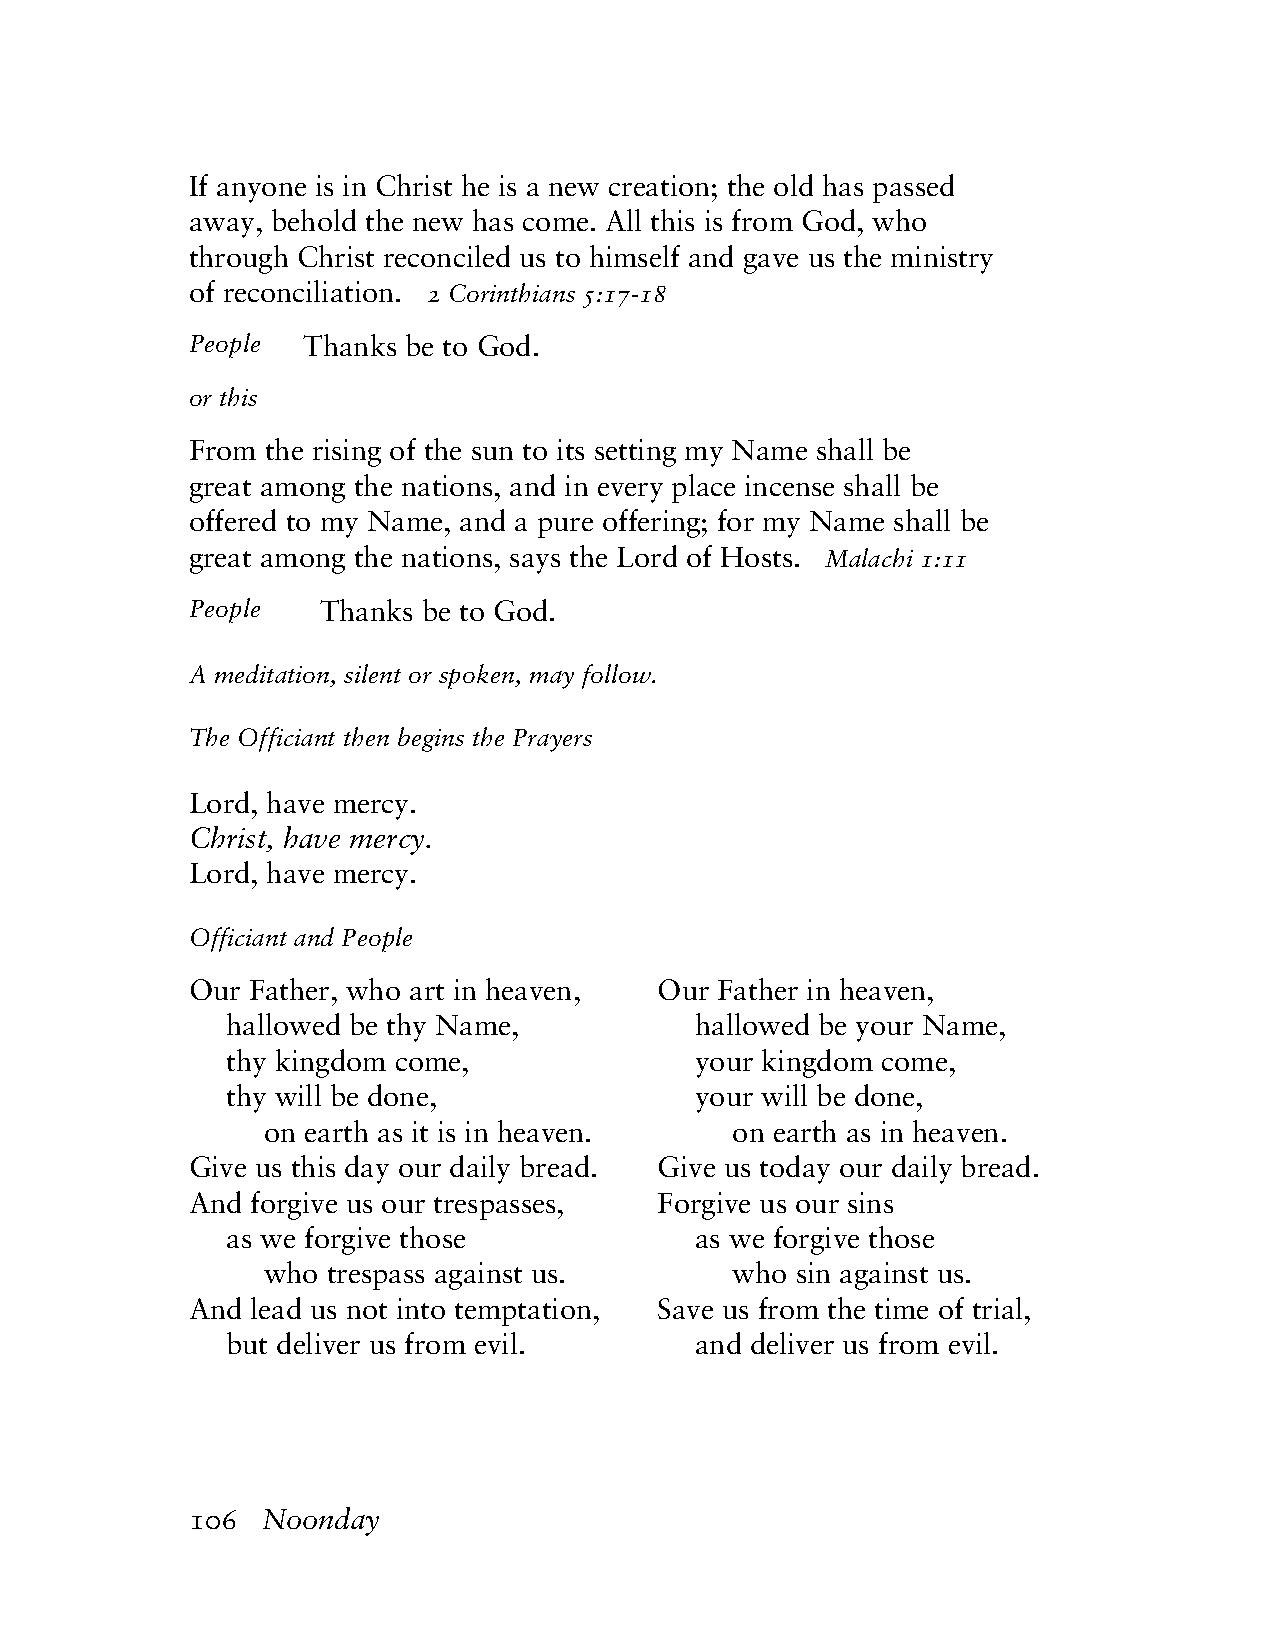 Page Book Of Common Prayer Tec 1979 Pdf 106 Wikisource The